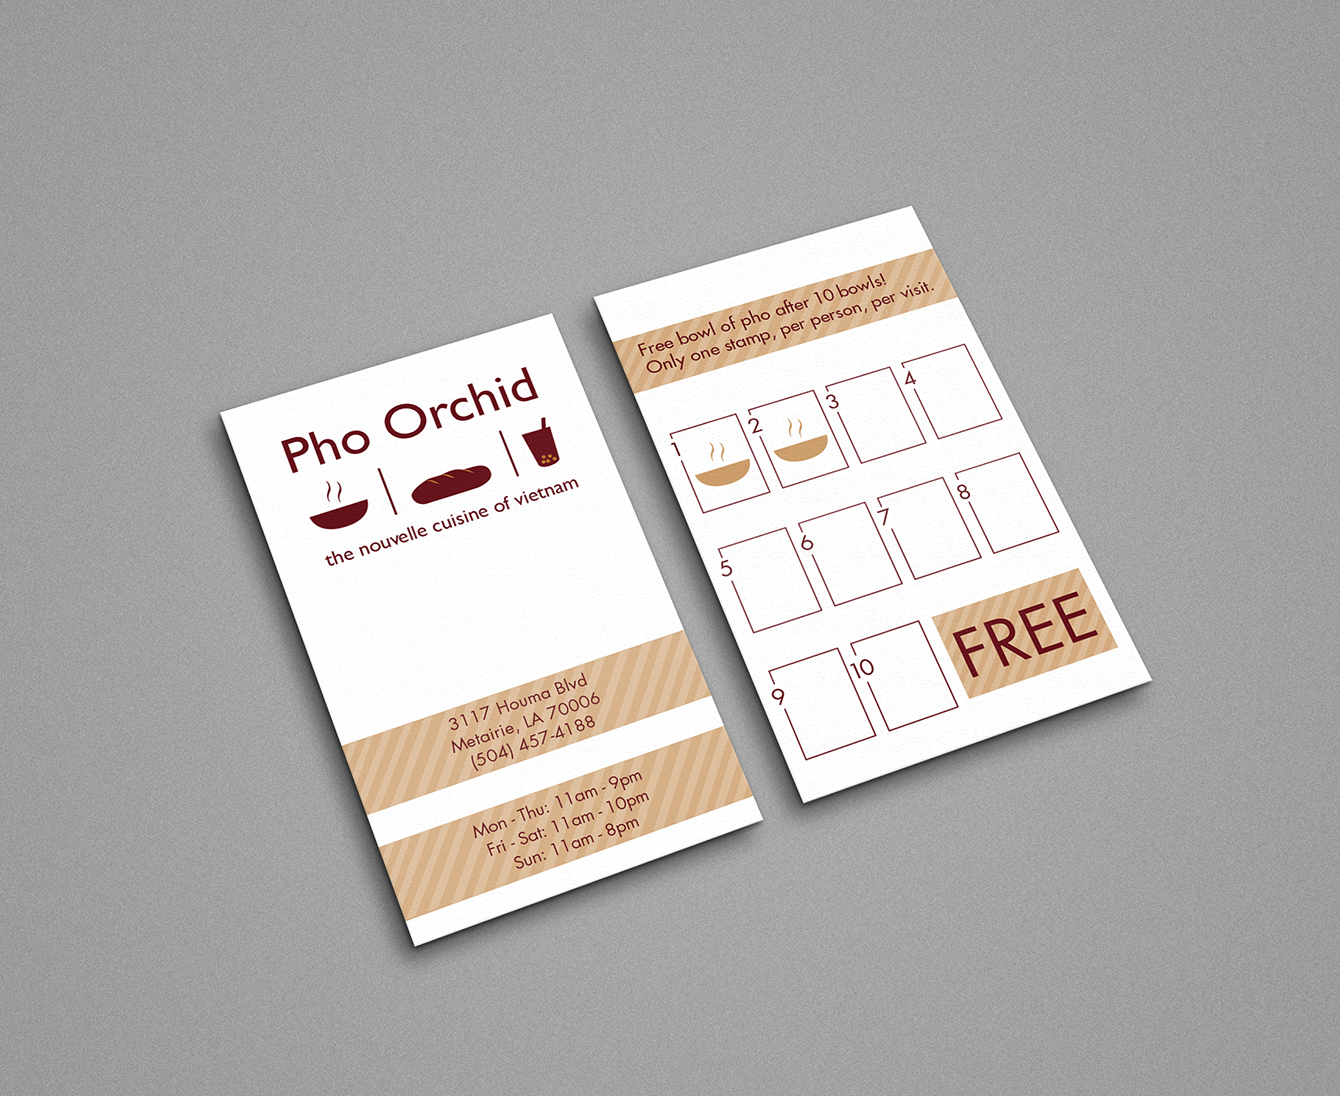 pho-orchid-pho-punch-card